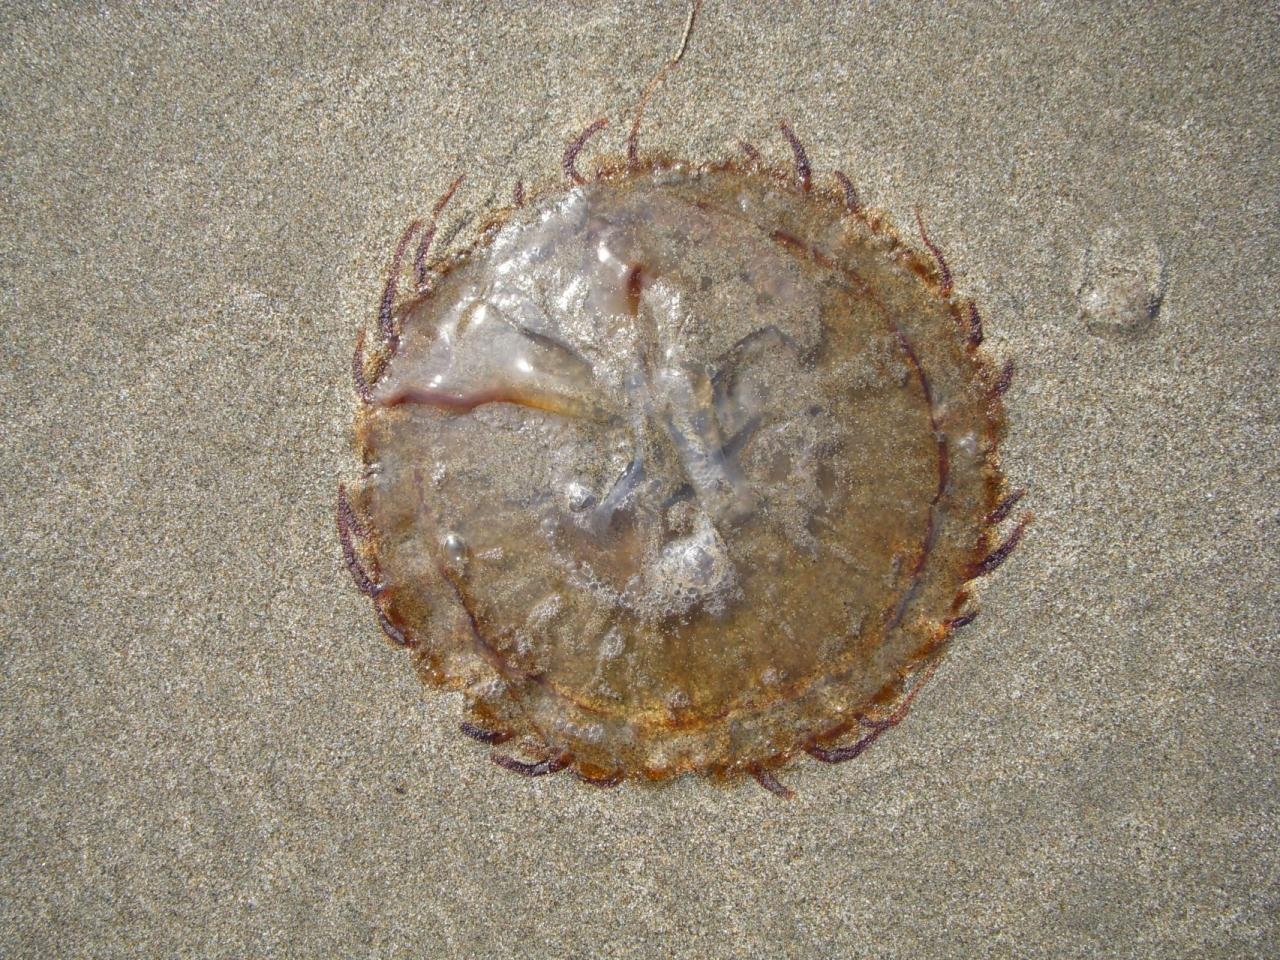 Found numerous jellyfish about 4-7 inches in diameter with short tentacles.